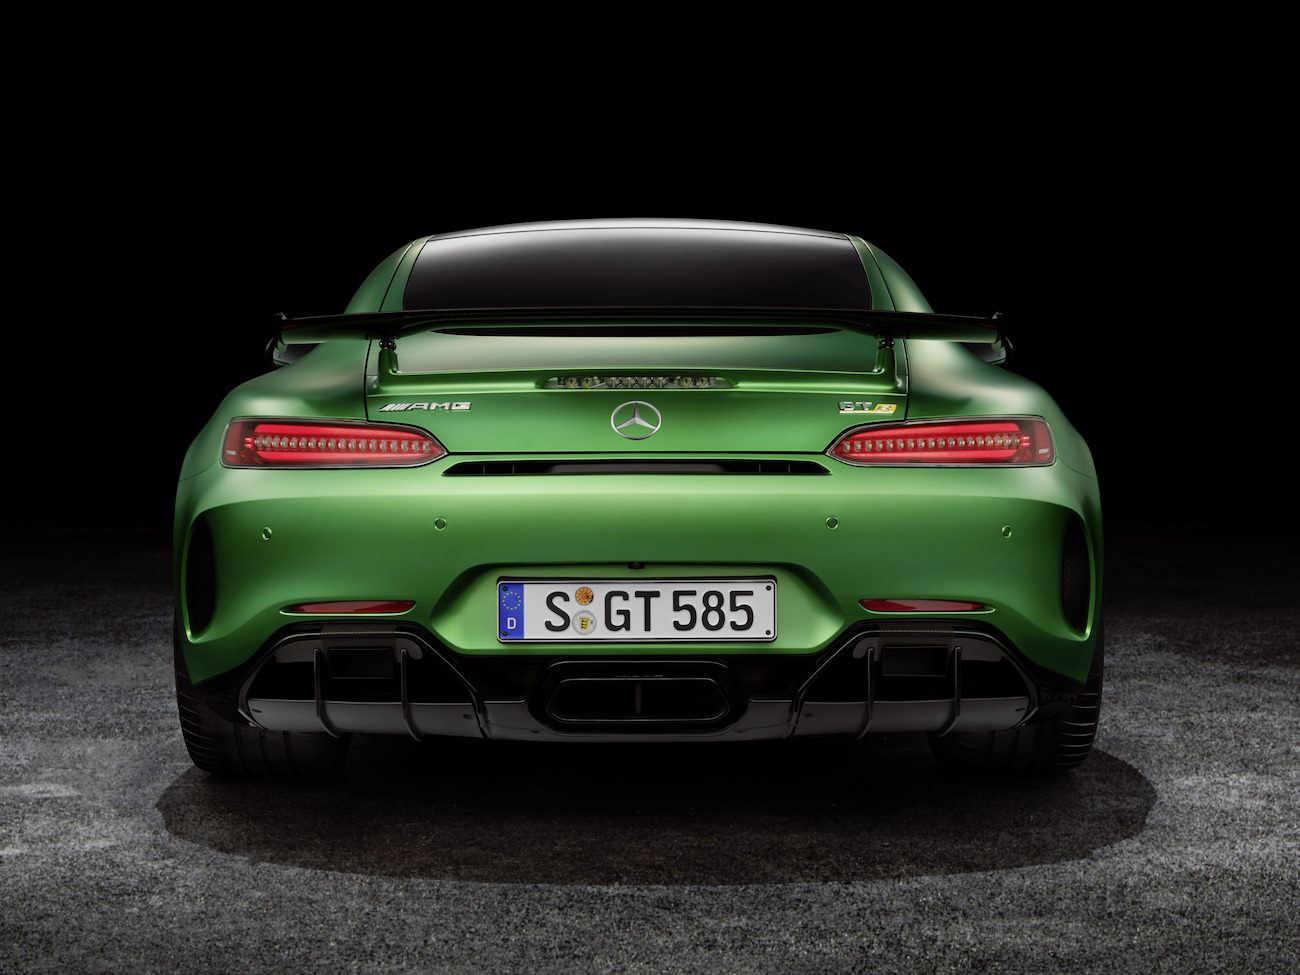 mercedes amg gt r des sensations incroyables sur route. Black Bedroom Furniture Sets. Home Design Ideas